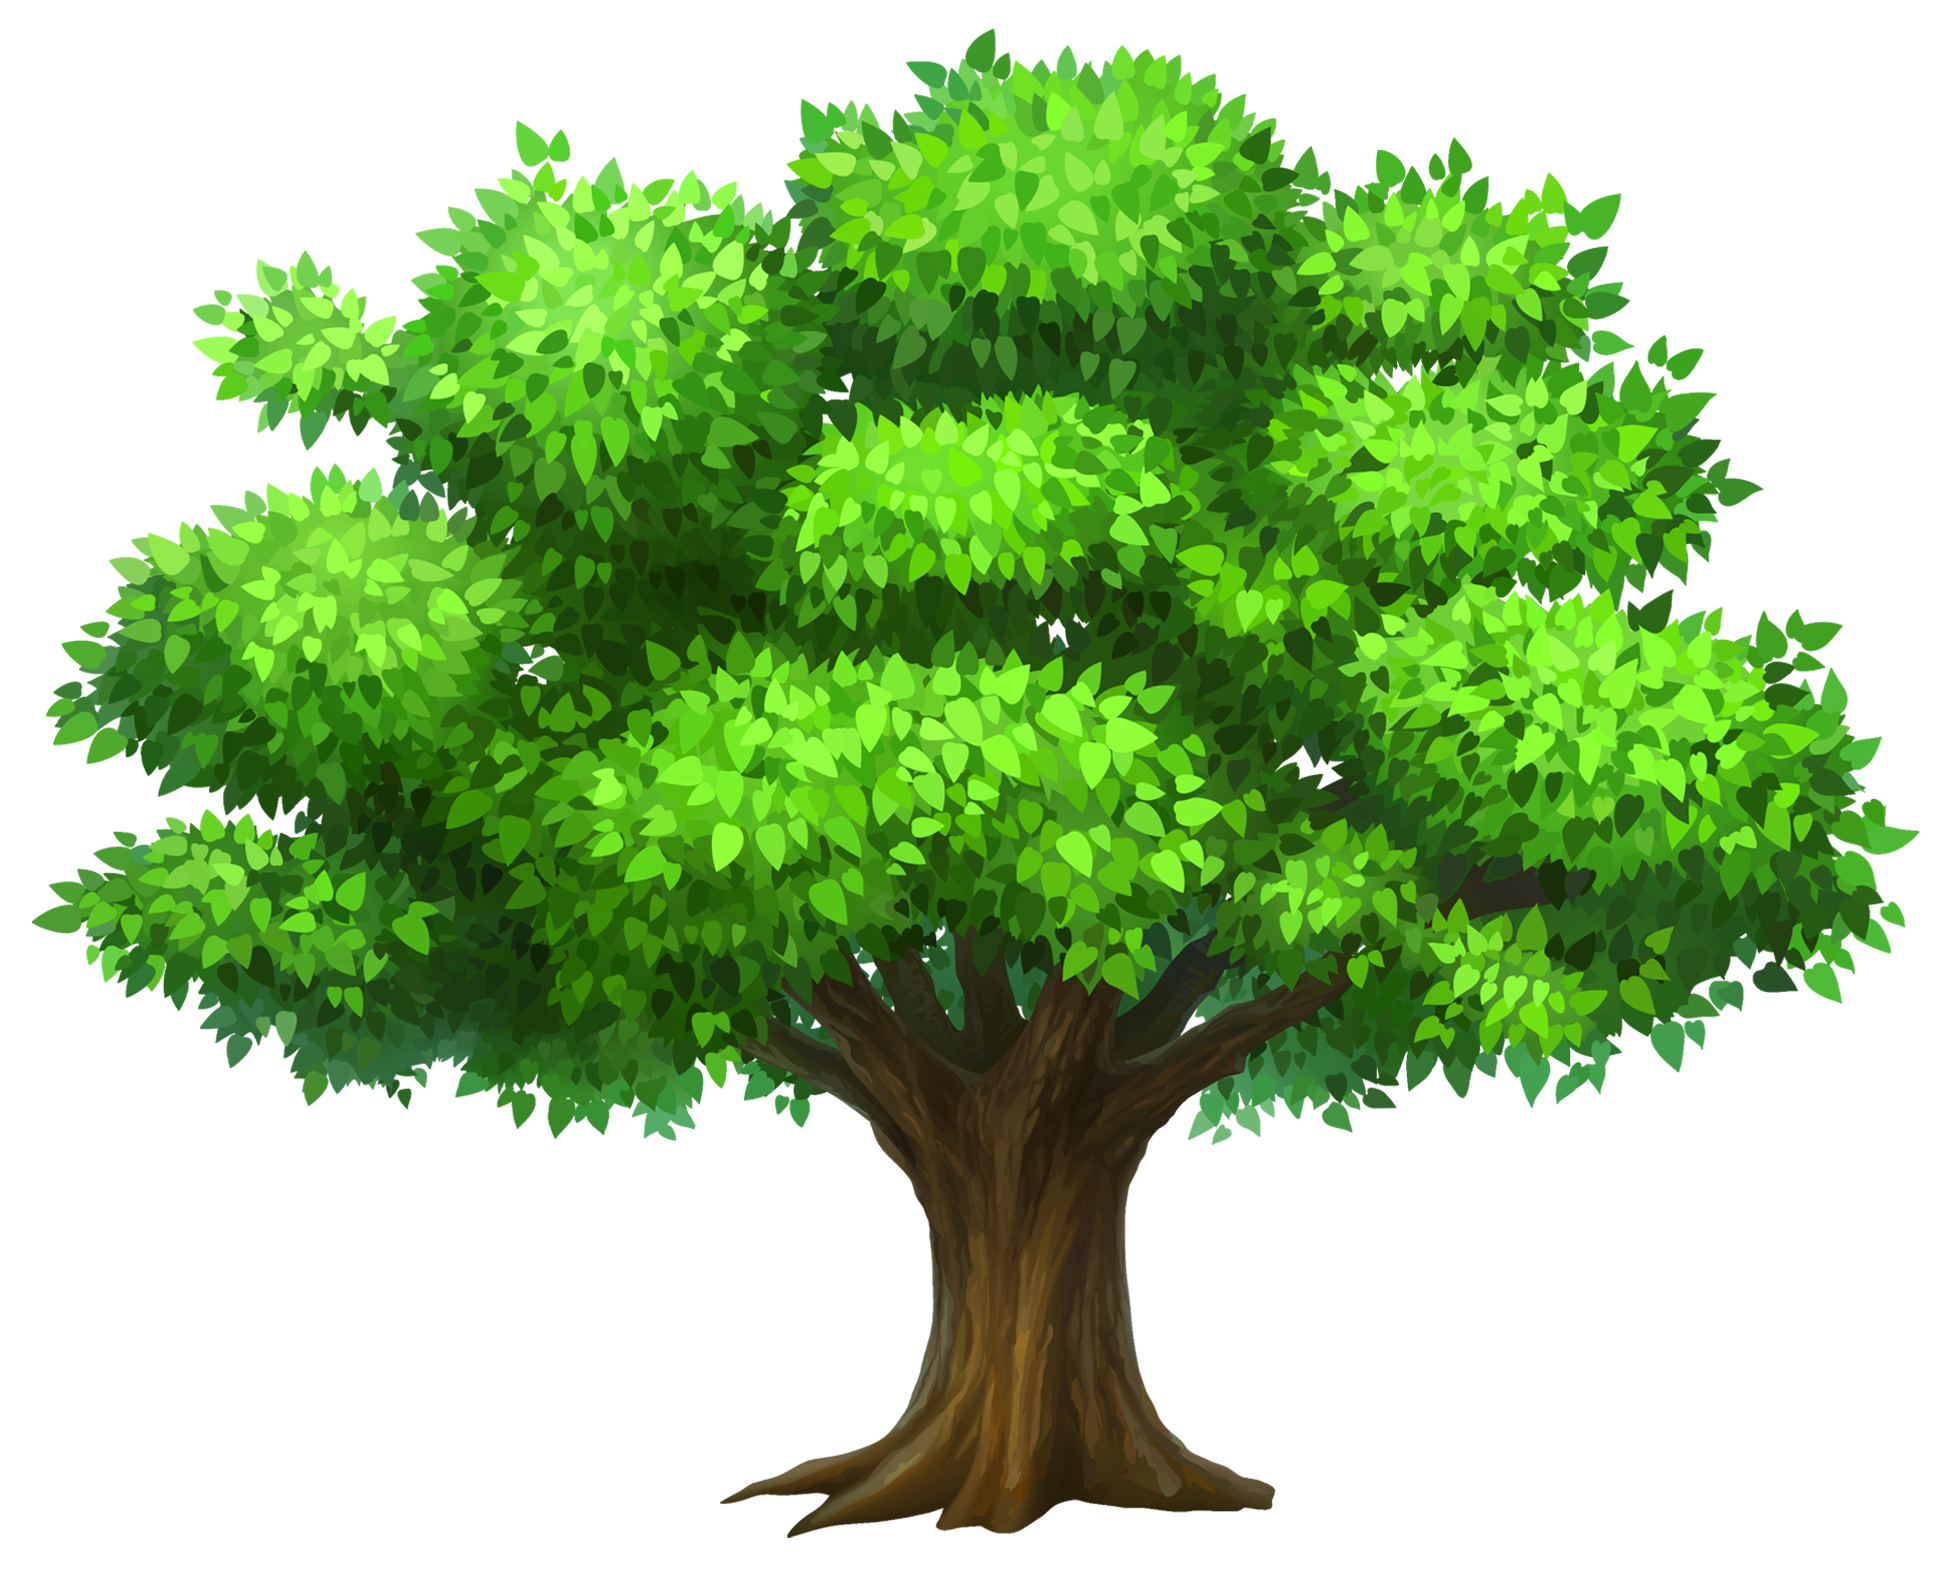 Nest clipart tree.  collection of narra